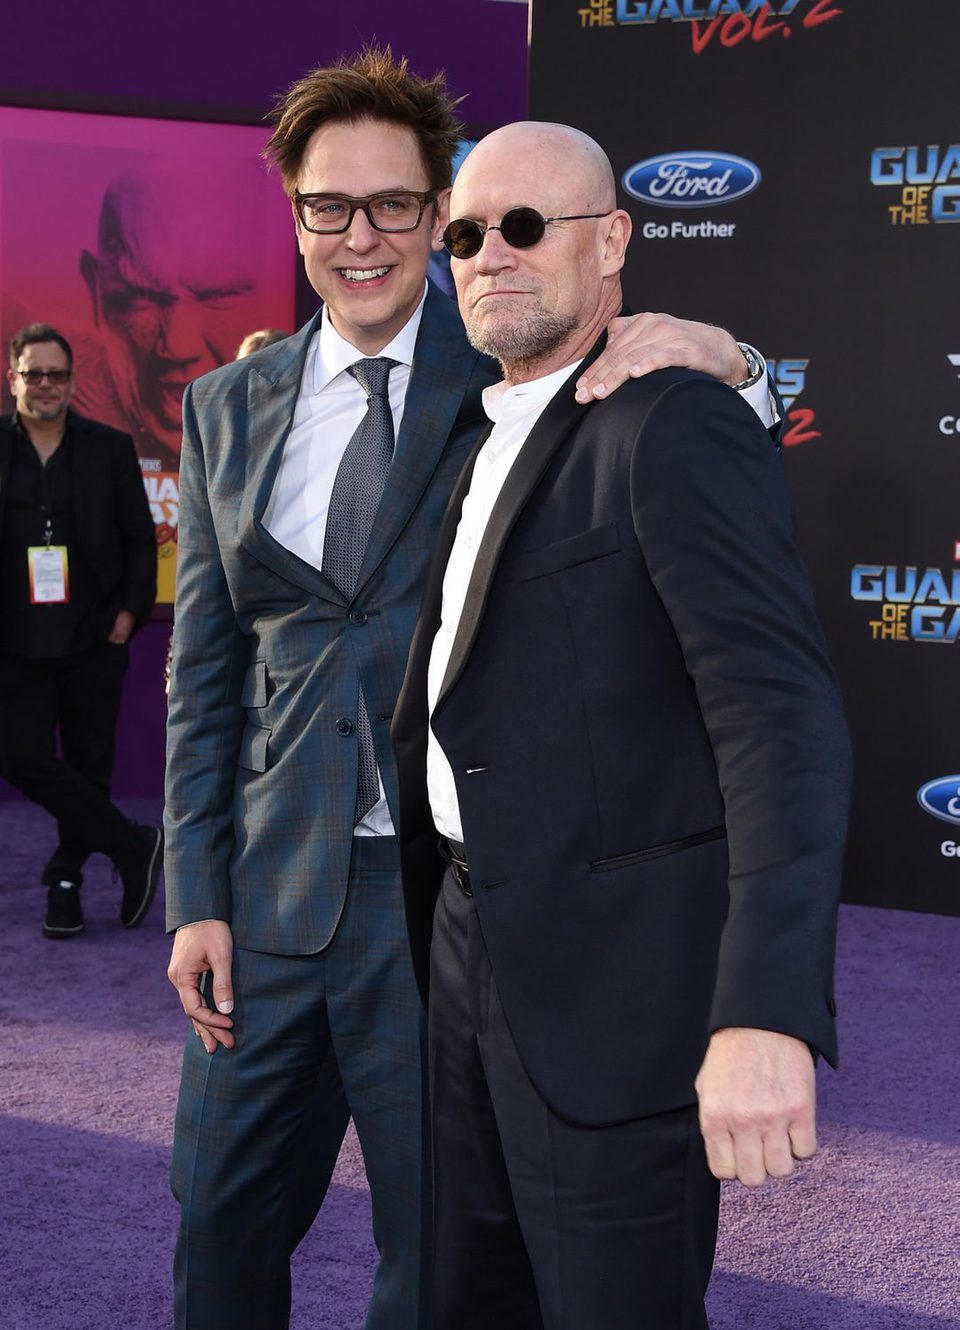 James Gunn and Michael Rooker at world premiere of 'Guardians of the Galaxy Vol. 2'